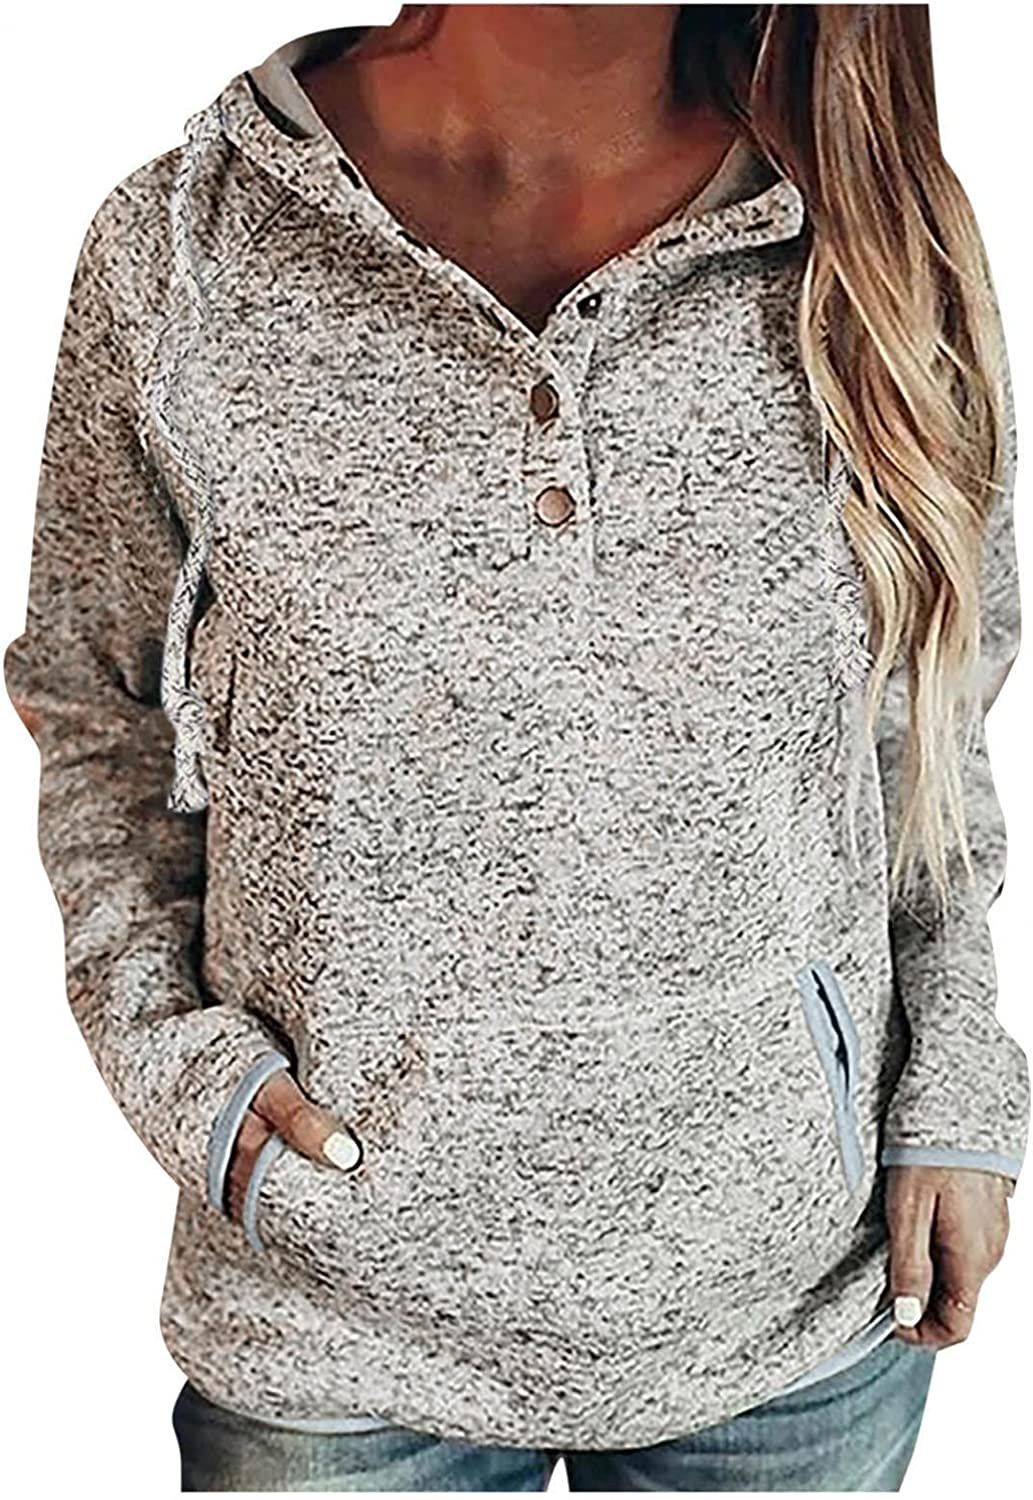 Hoodies for Women Pullover,Women's Casual Loose Long Sleeve with Pockets Sweatshirts Lightweight Crewneck Tops Shirts